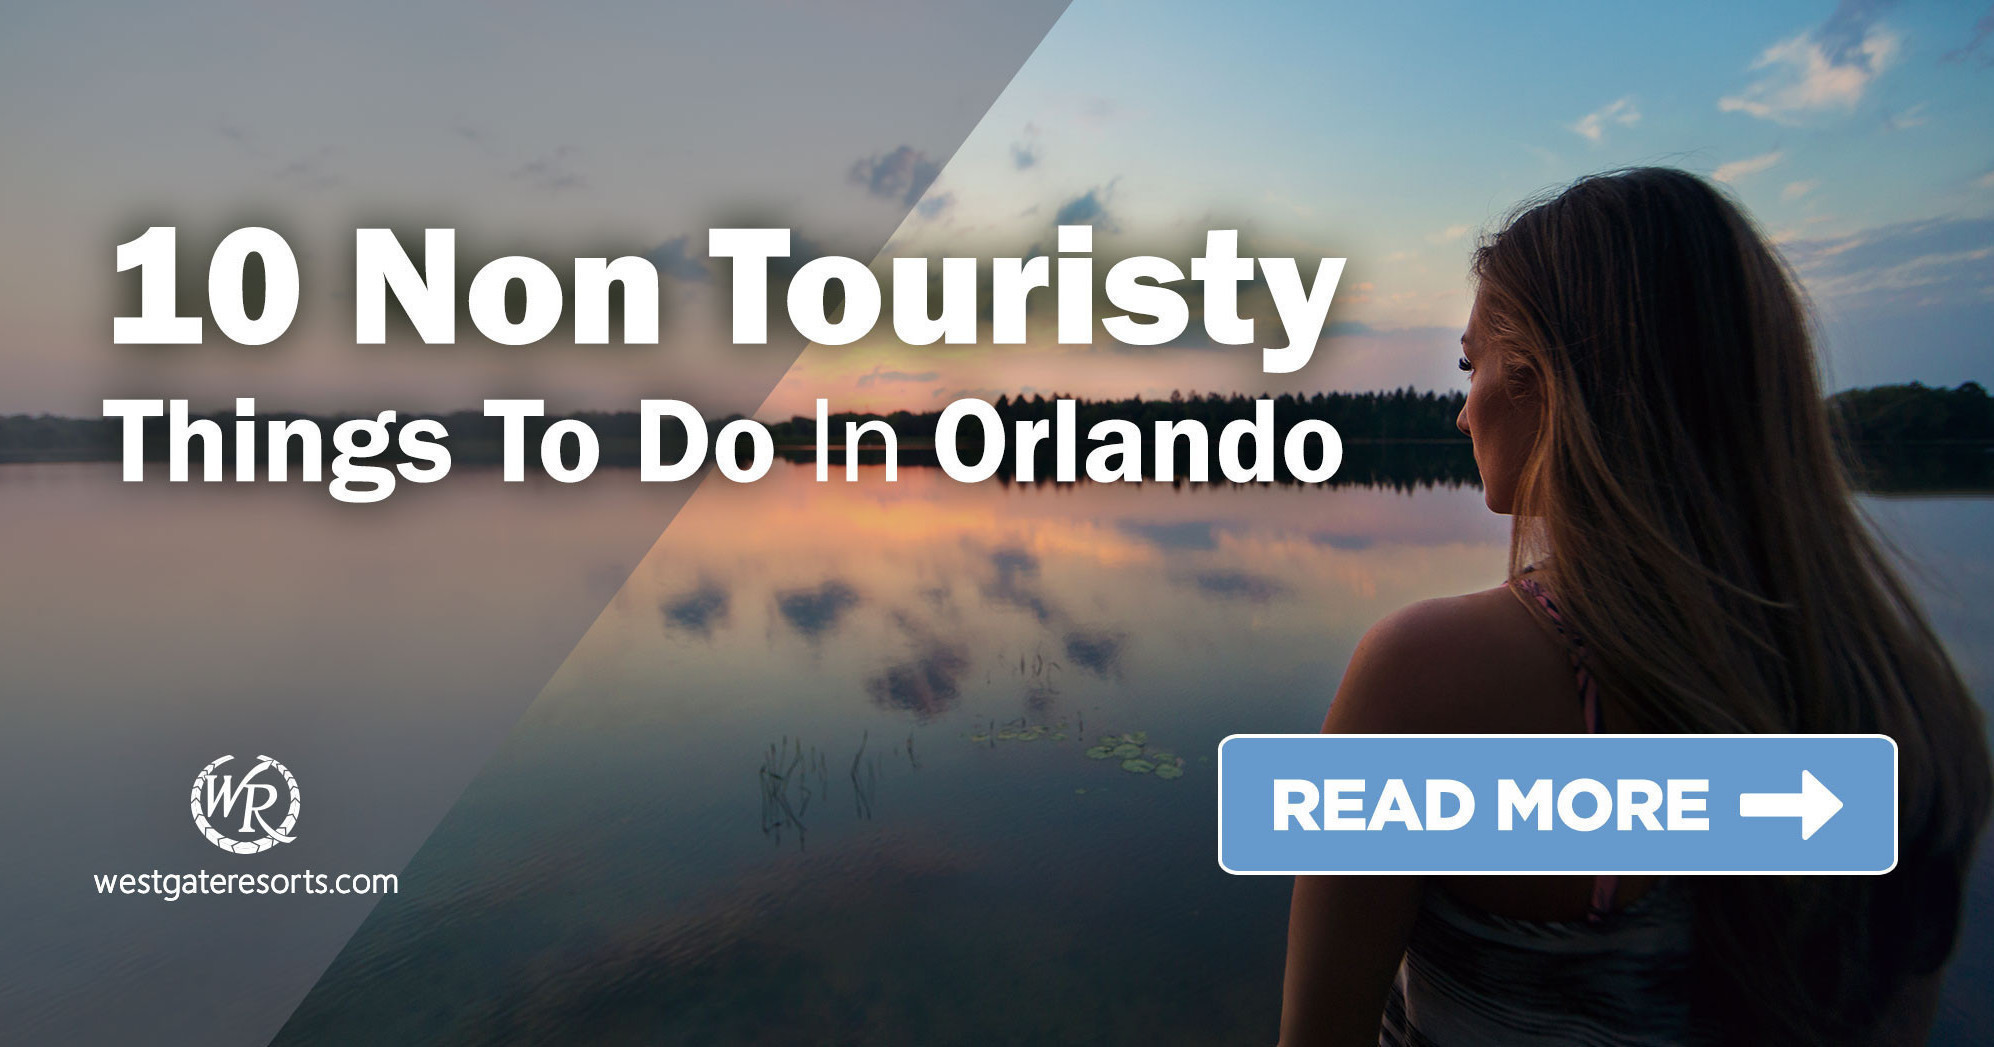 10 Nontouristy Things to Do in Orlando | Westgate Travel Blog